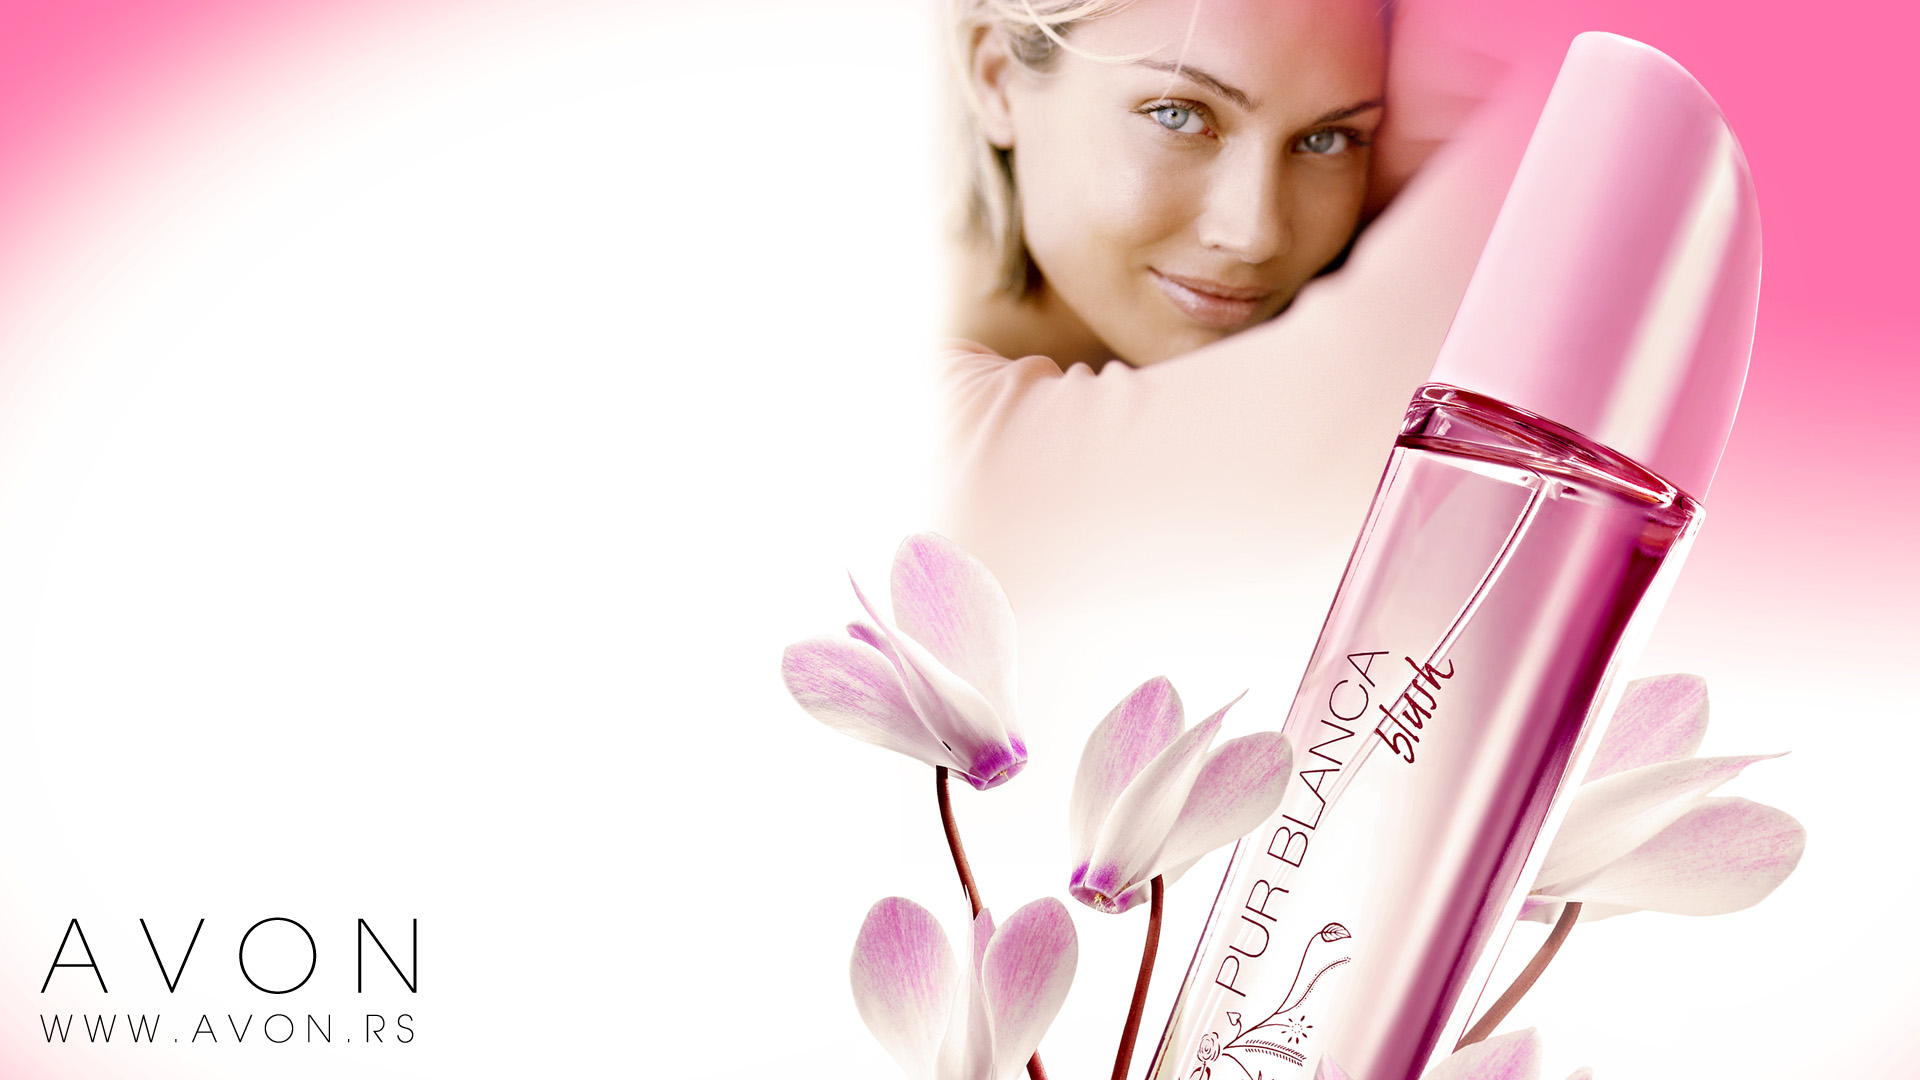 avon dating site Website, avoncom footnotes / references avon products, inc, known as avon,  founded by david h mcconnell in 1886 is a direct selling  the first project as  of that date and a reversal of the charge recorded in the third quarter of 2001.